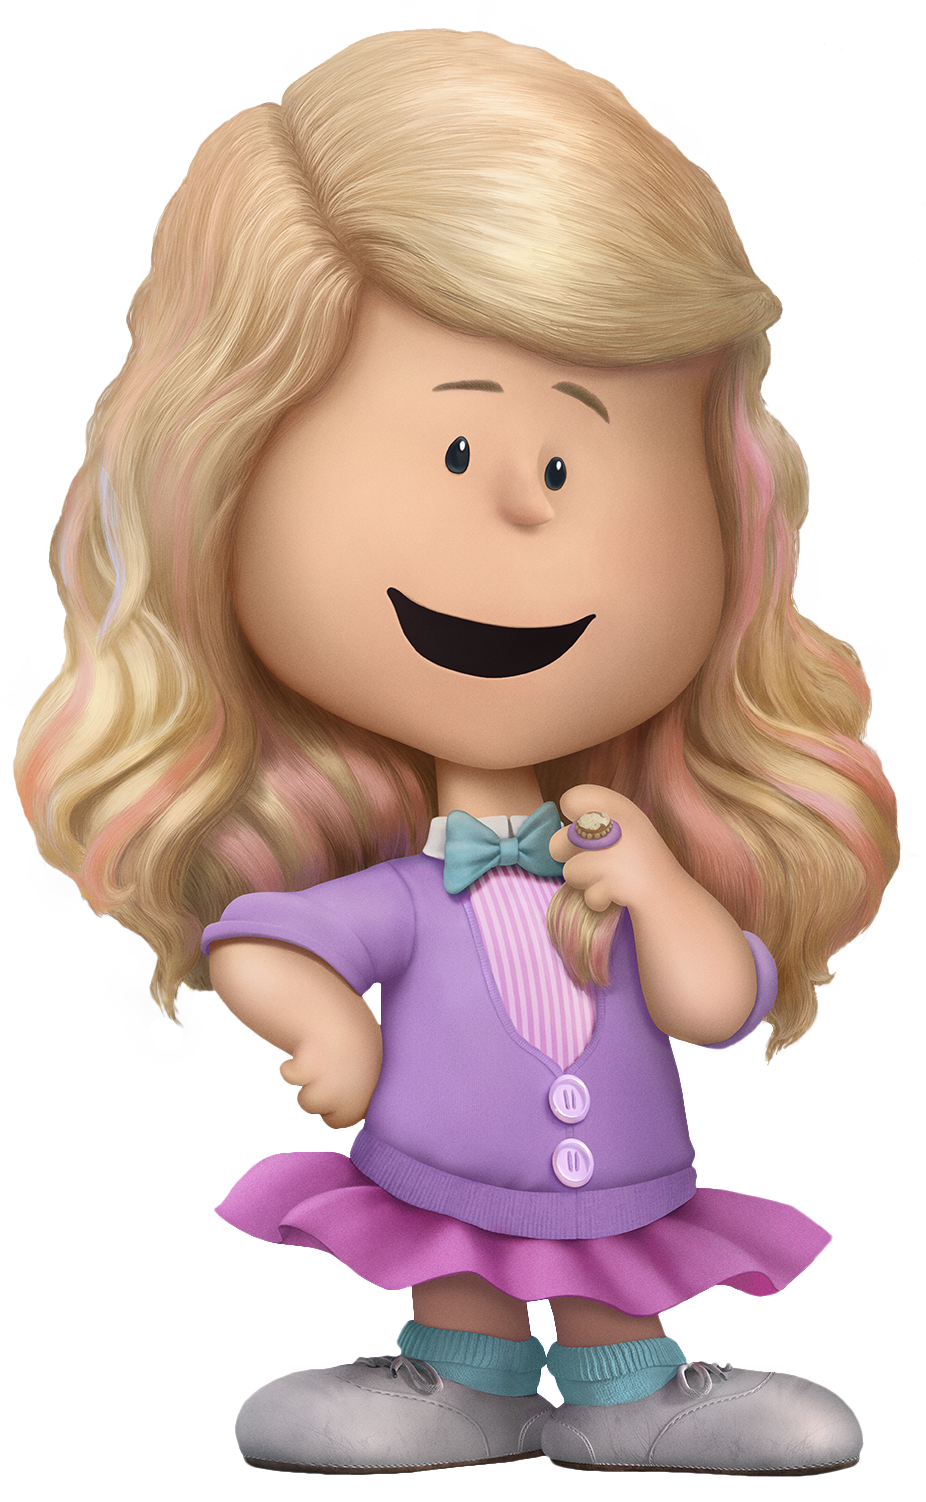 Meghan trainor the movie. Peanuts clipart sally